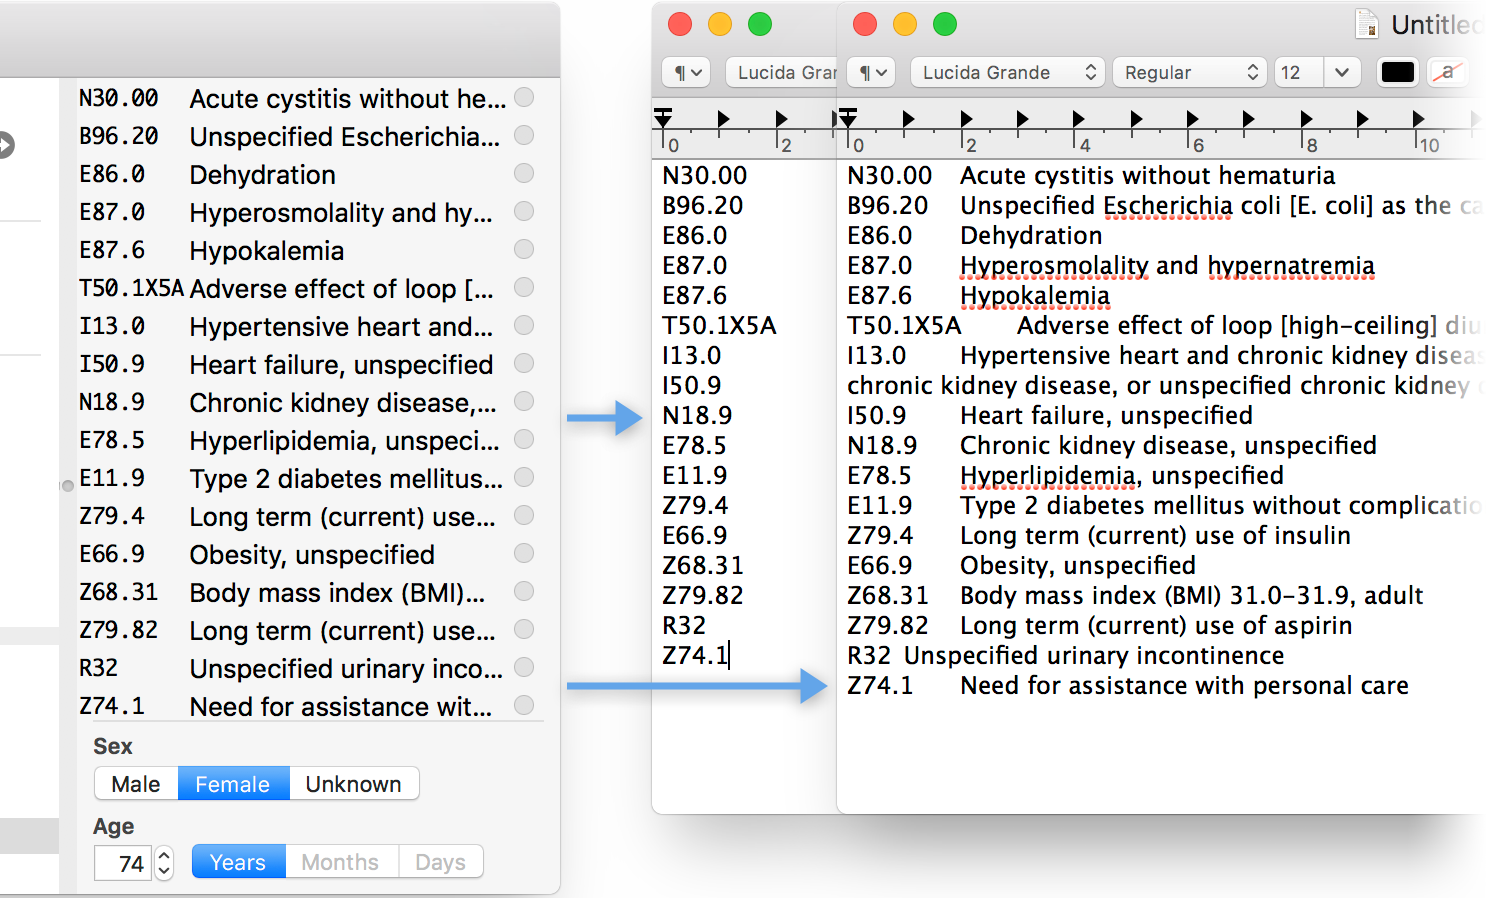 Transfer Data - Copy the codes to the clipboard so you can use them in another app as text.